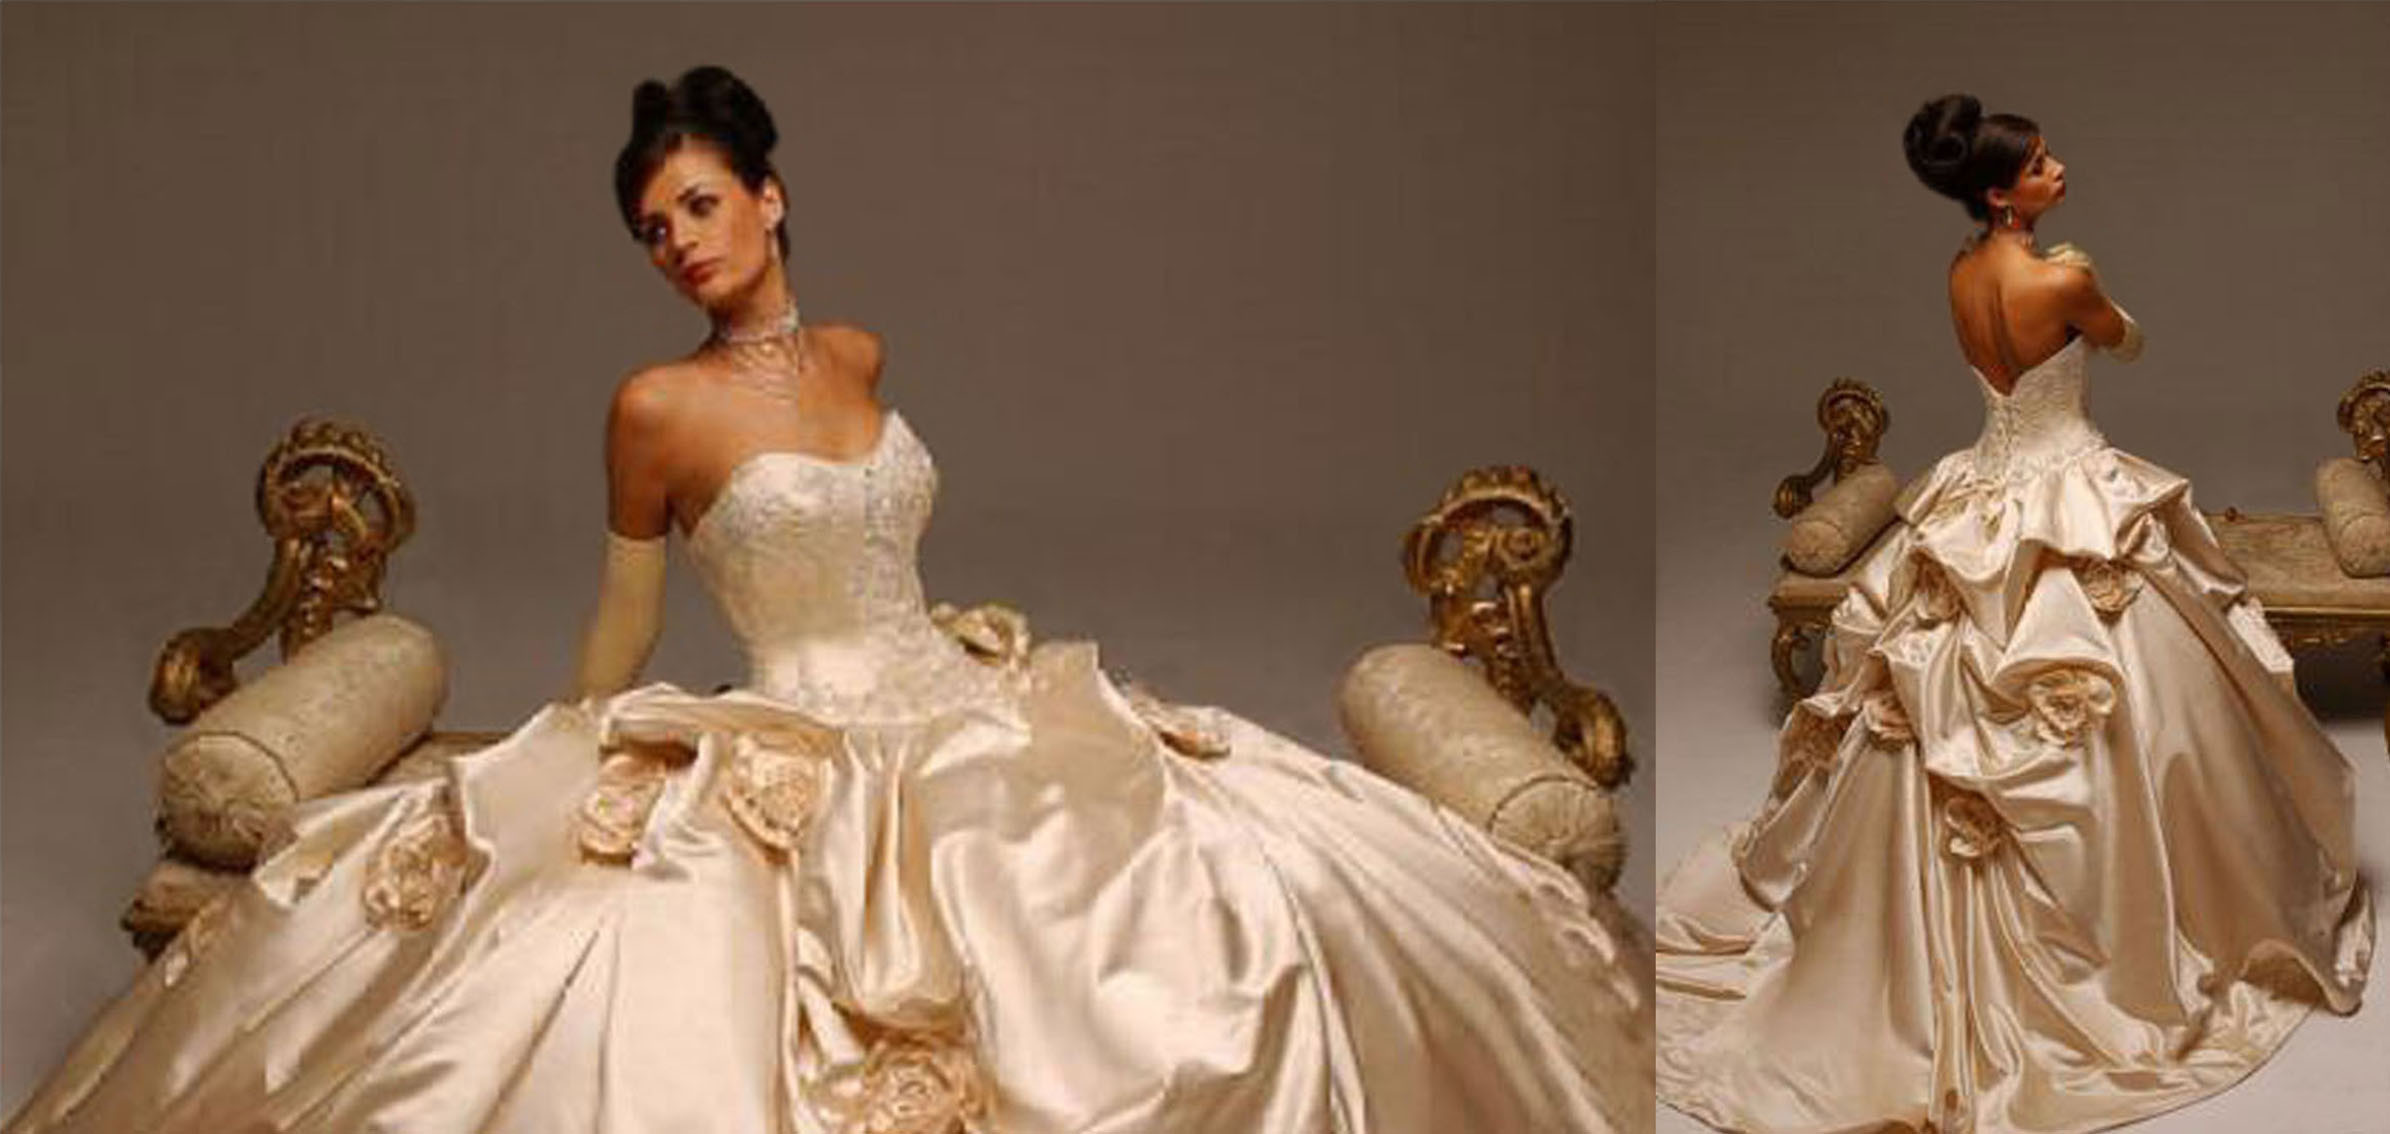 Princesses dresses dream dresses ball gowns wedding for Wedding dresses in color